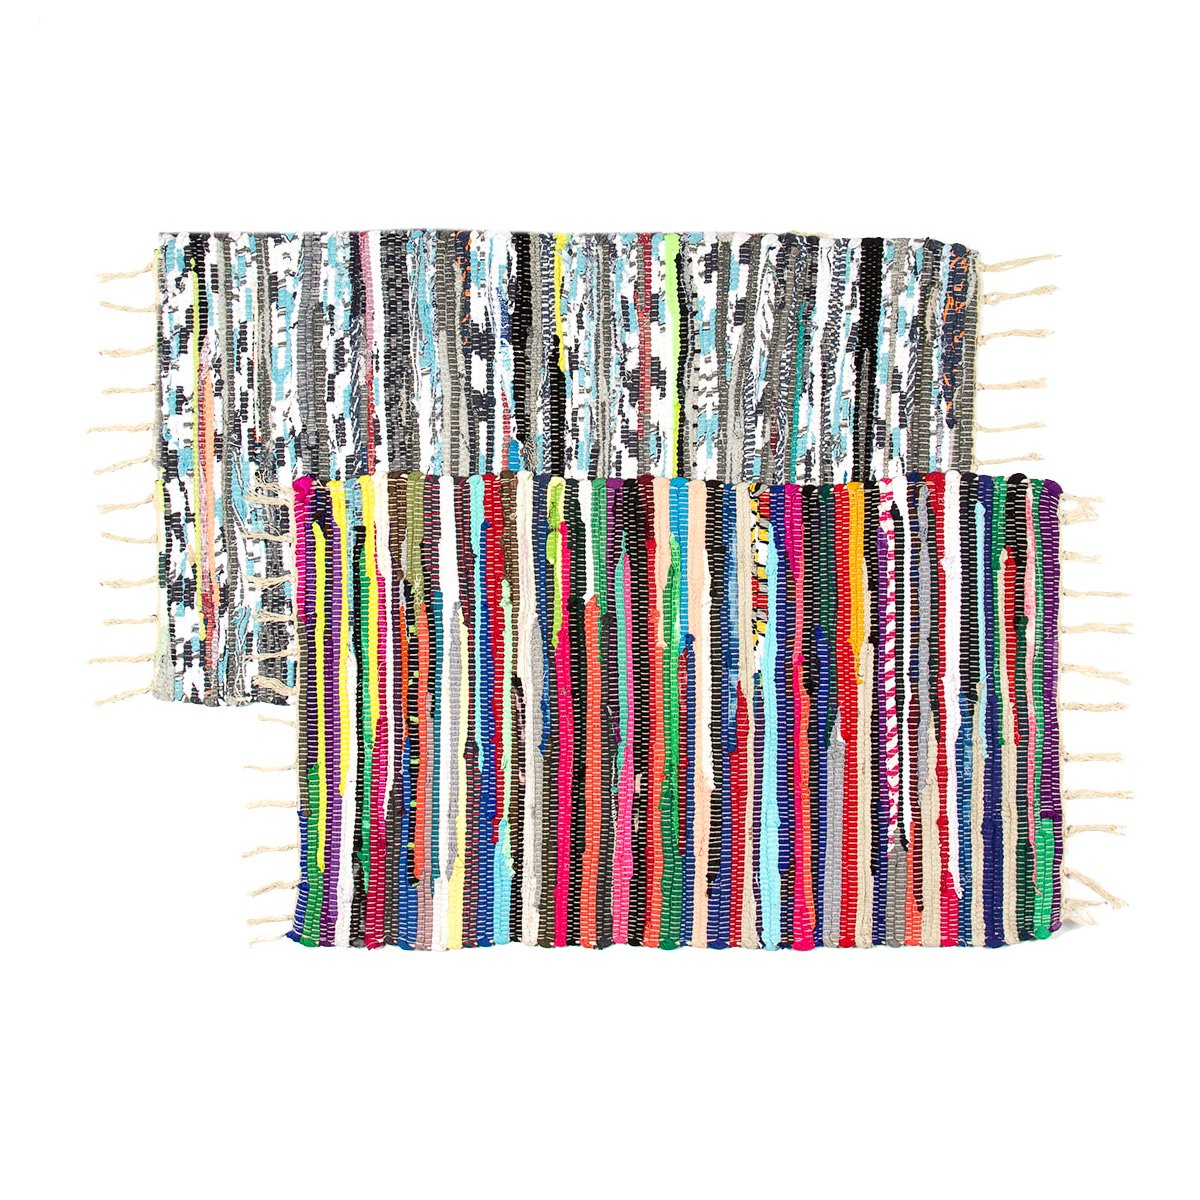 Royal Collection (2 Pack) Chindi Doorway Rag Rug Set 20 x 32 Multi-Color Recycled Cotton Woven Entryway Rug